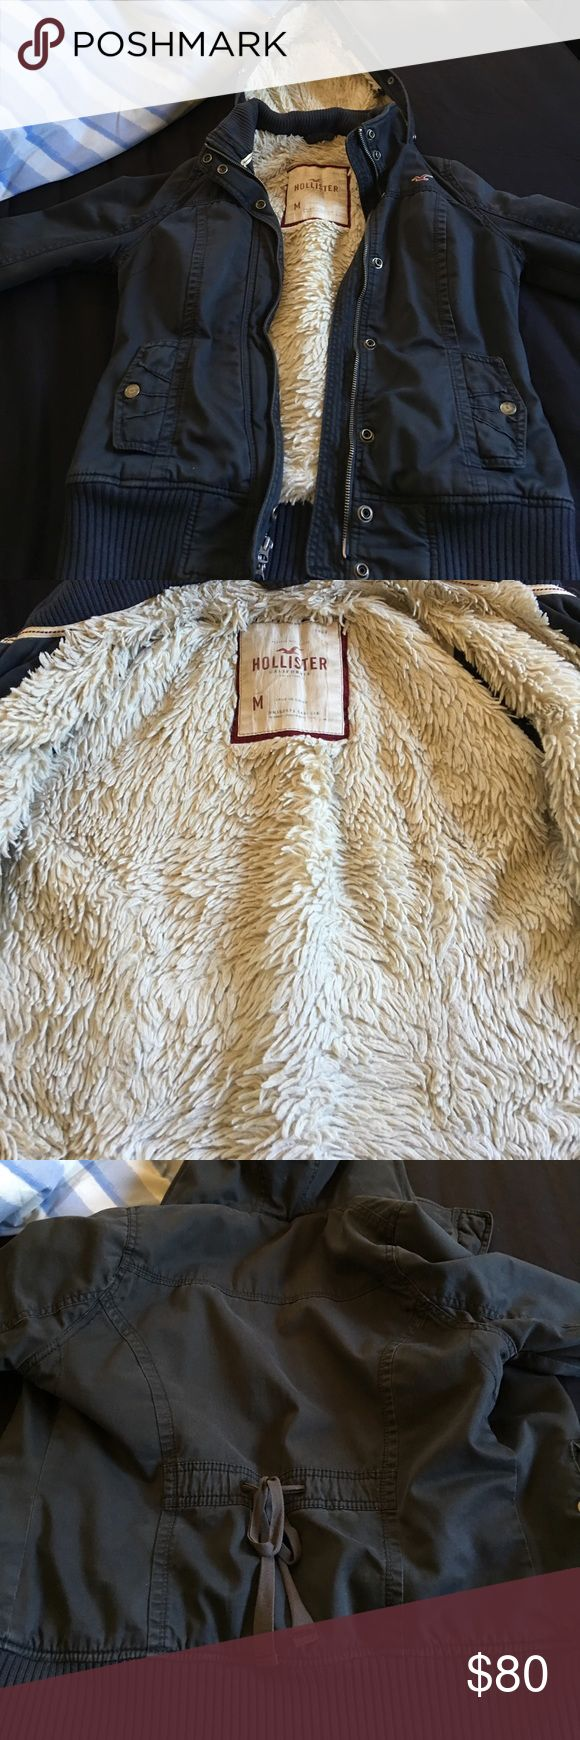 Hollister coat Great condition Hollister Jackets & Coats